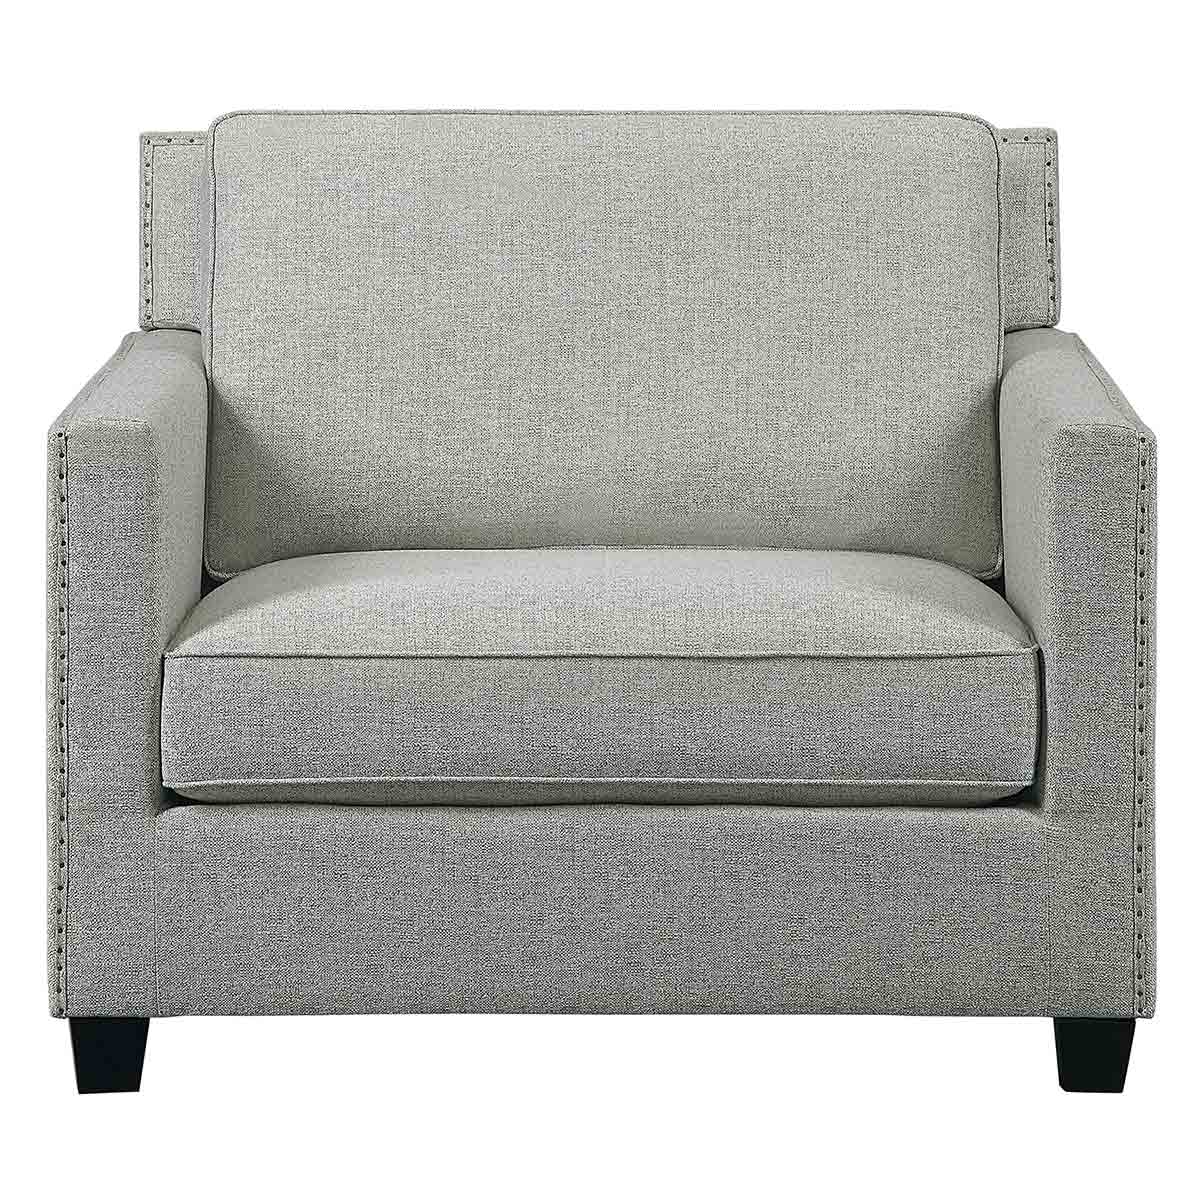 Homelegance Pickerington Chair - Light gray